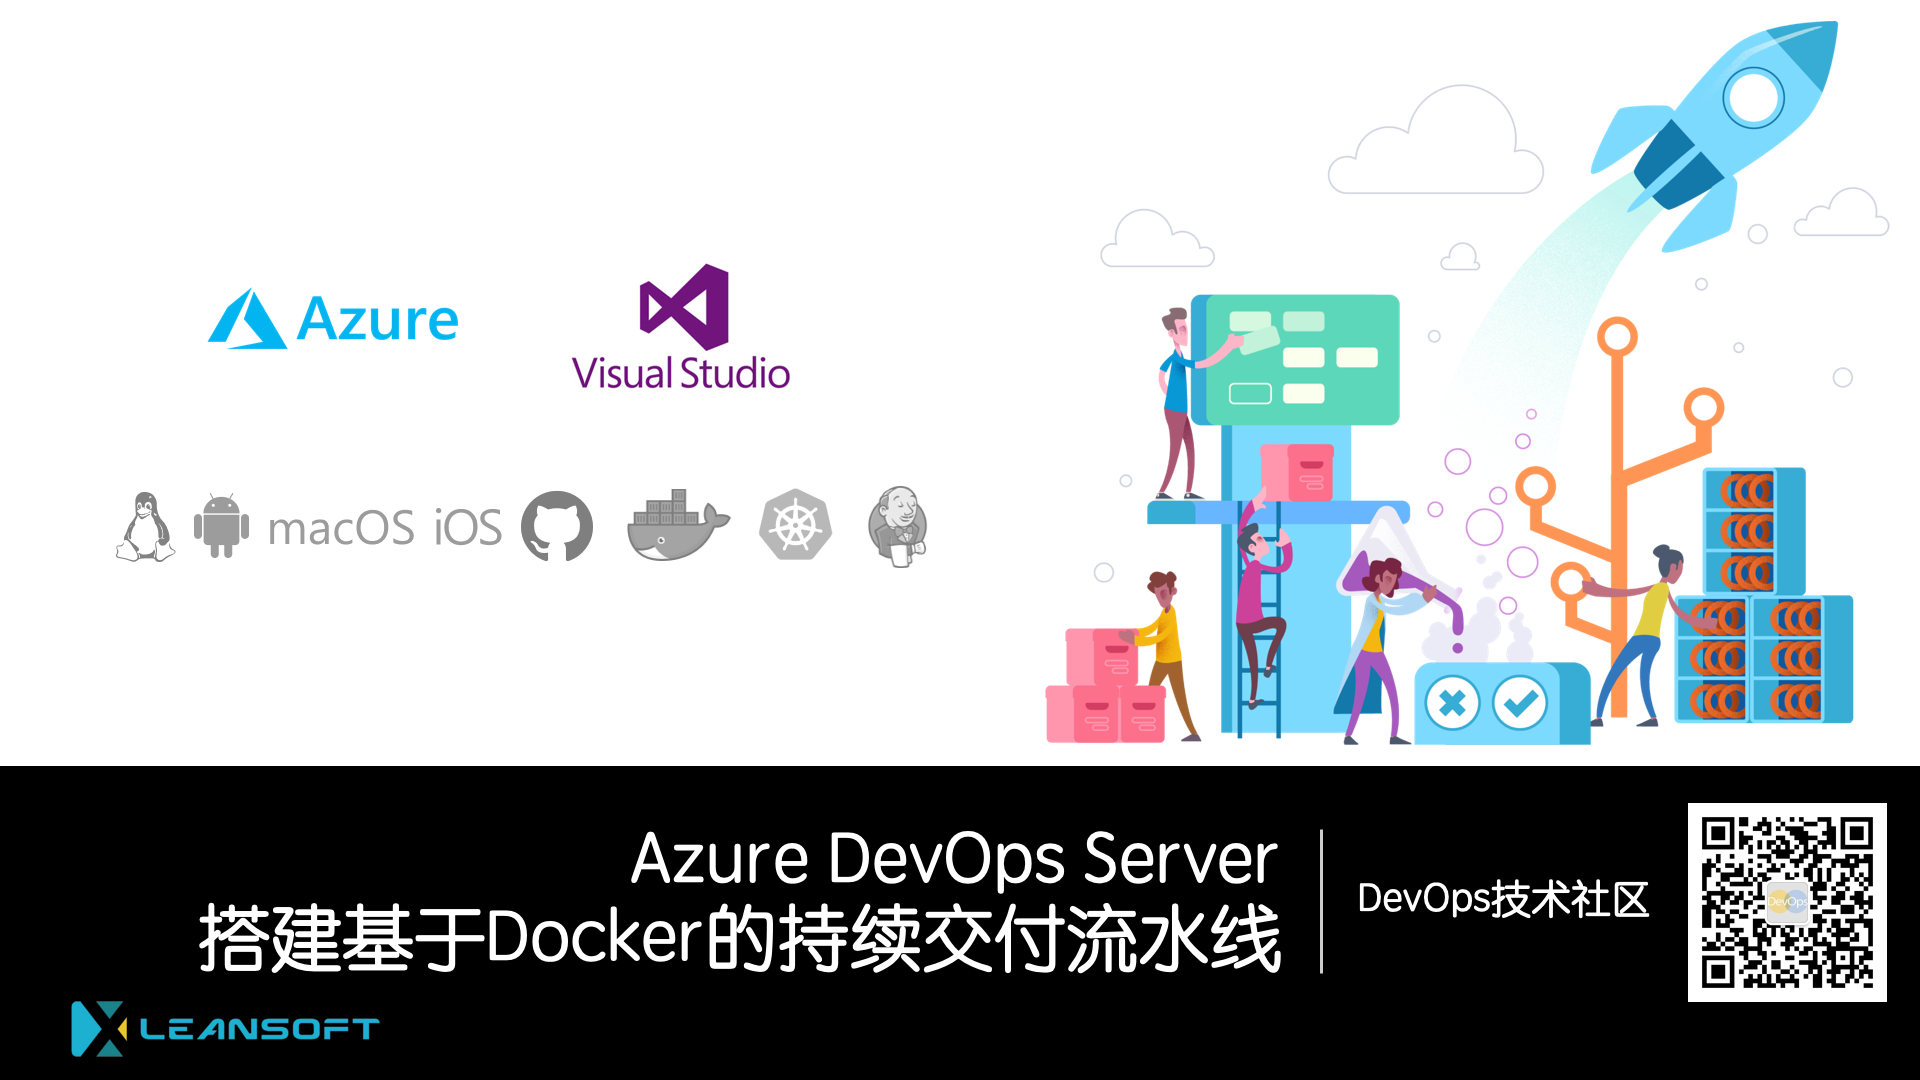 Picture of frog by Ben Fredericson